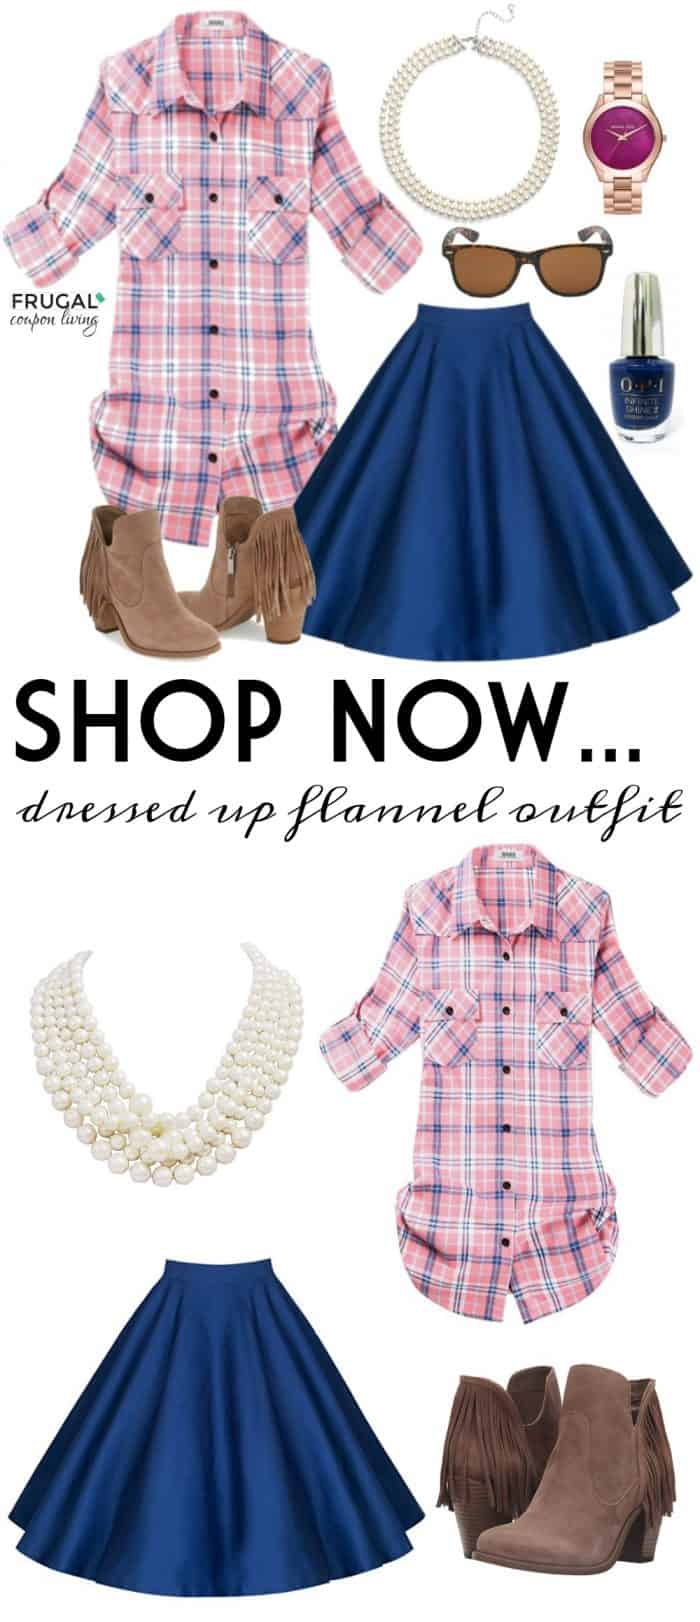 dressed-up-flannel-outfit-frugal-coupon-living-frugal-fashion-friday-long